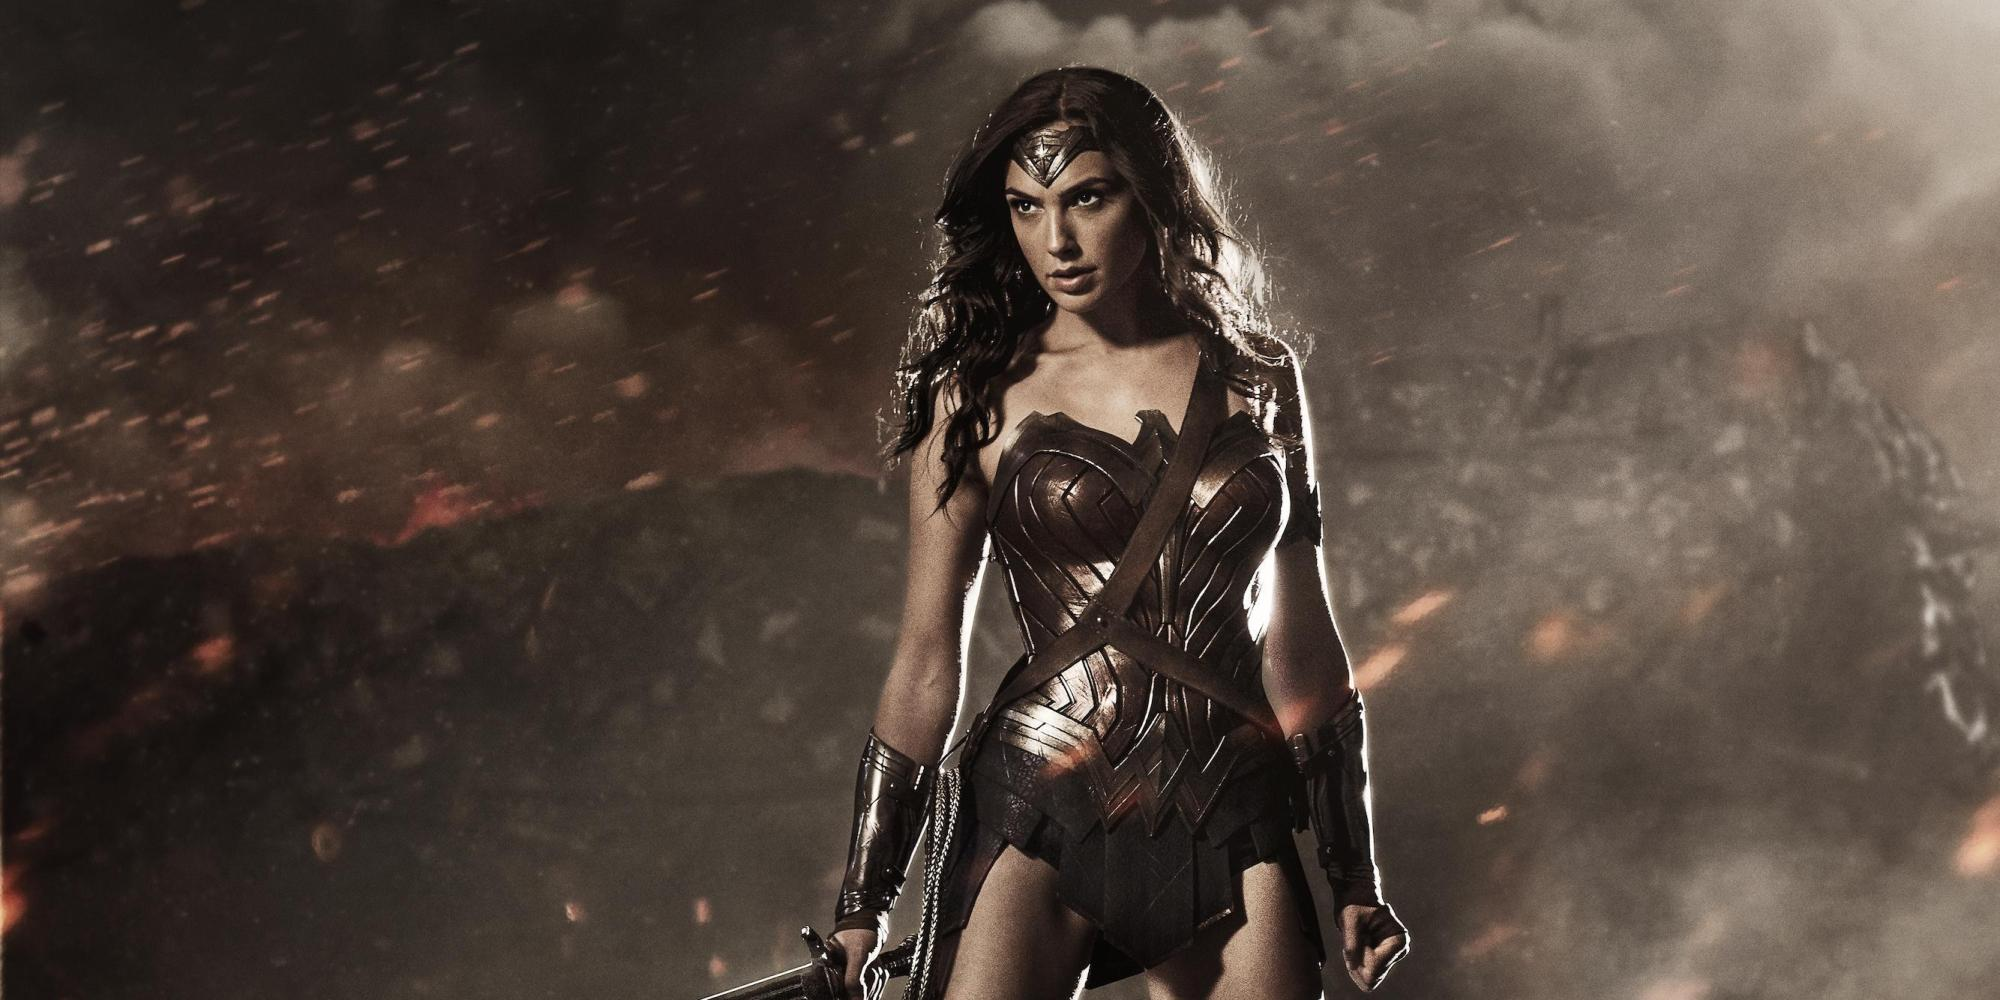 'Wonder Woman' to Begin Filming This Year